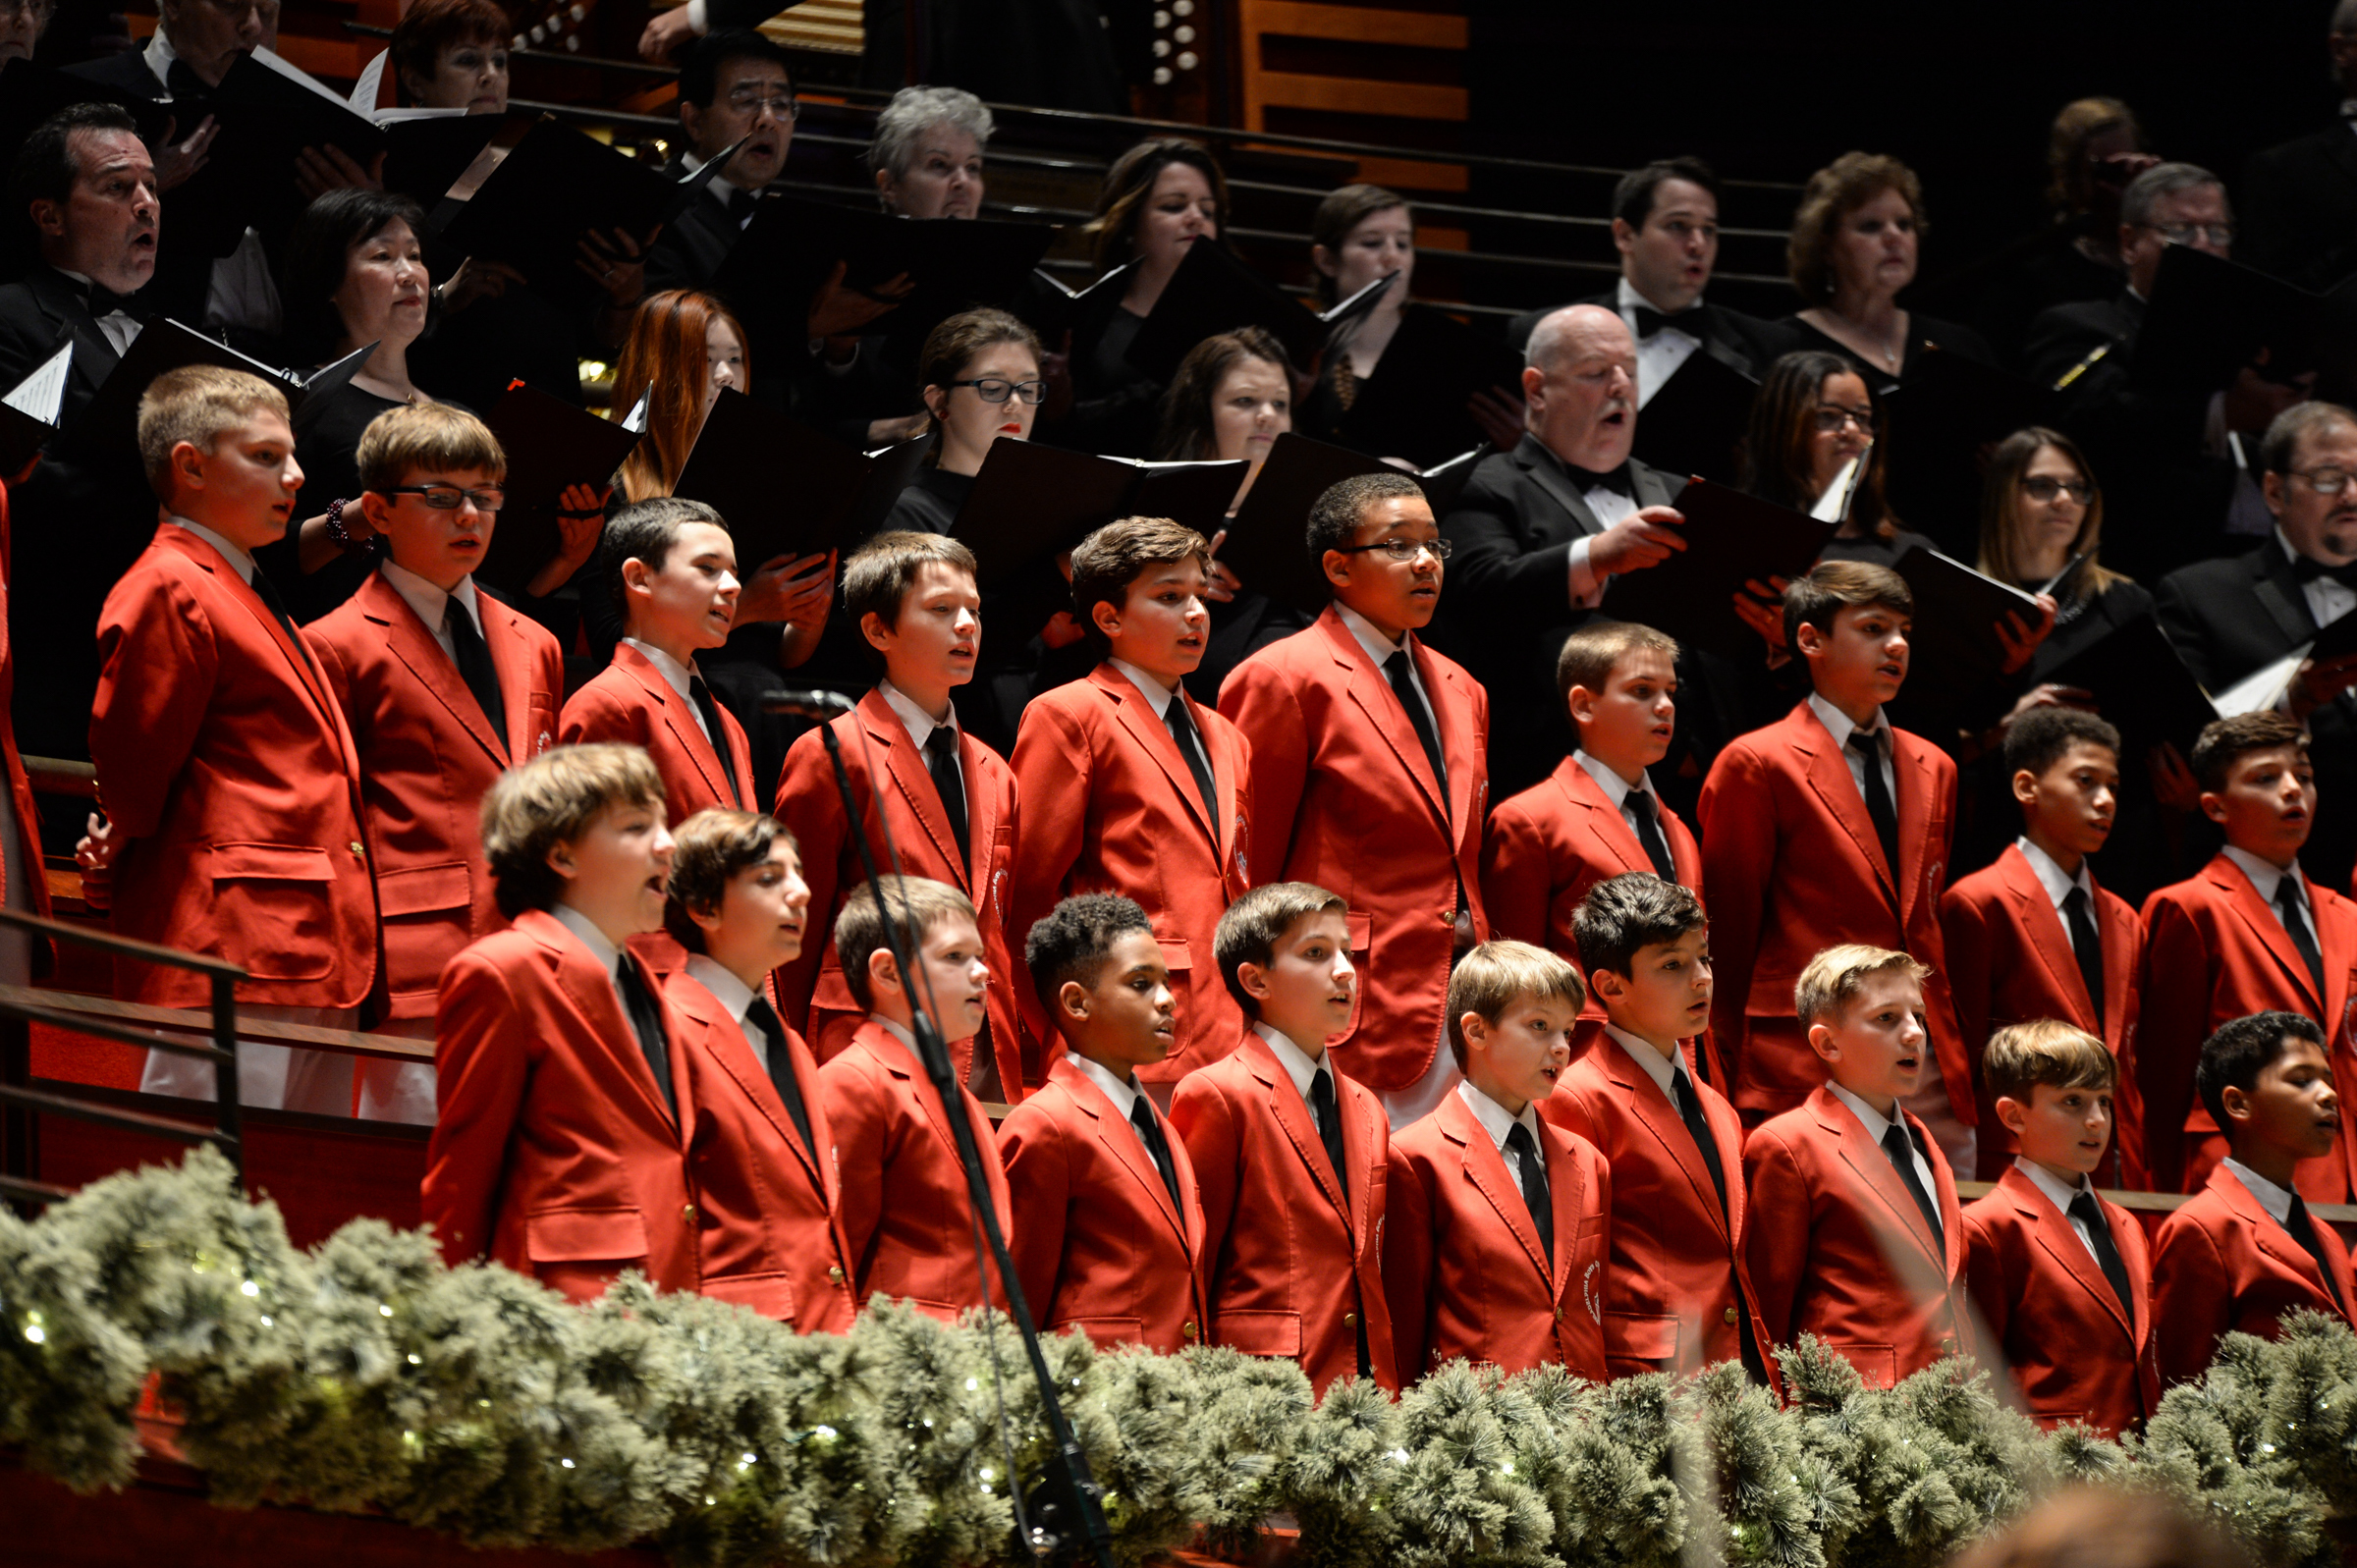 The Philadelphia Boys Choir performed with the Philly POPS at Verizon Hall in the Kimmel Center Dec. 2.